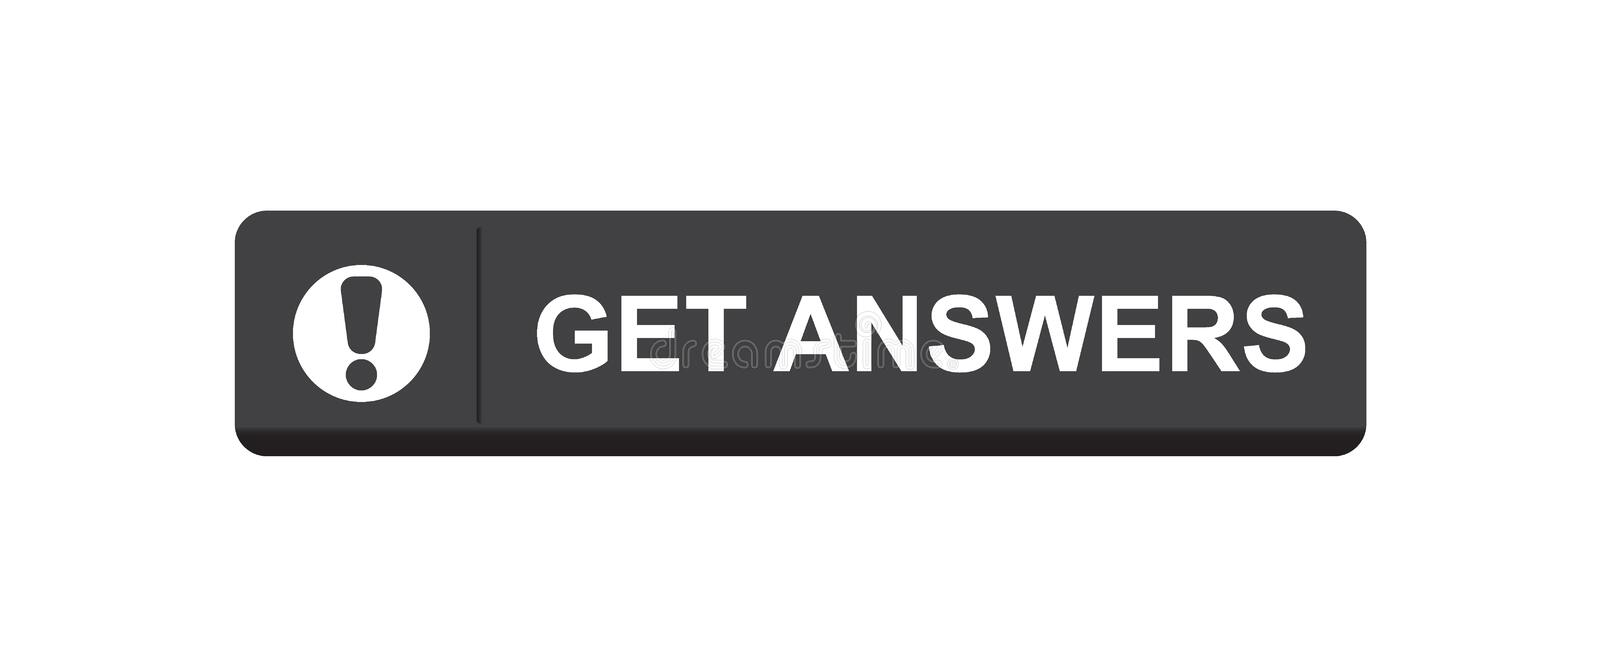 Get answers royalty free illustration